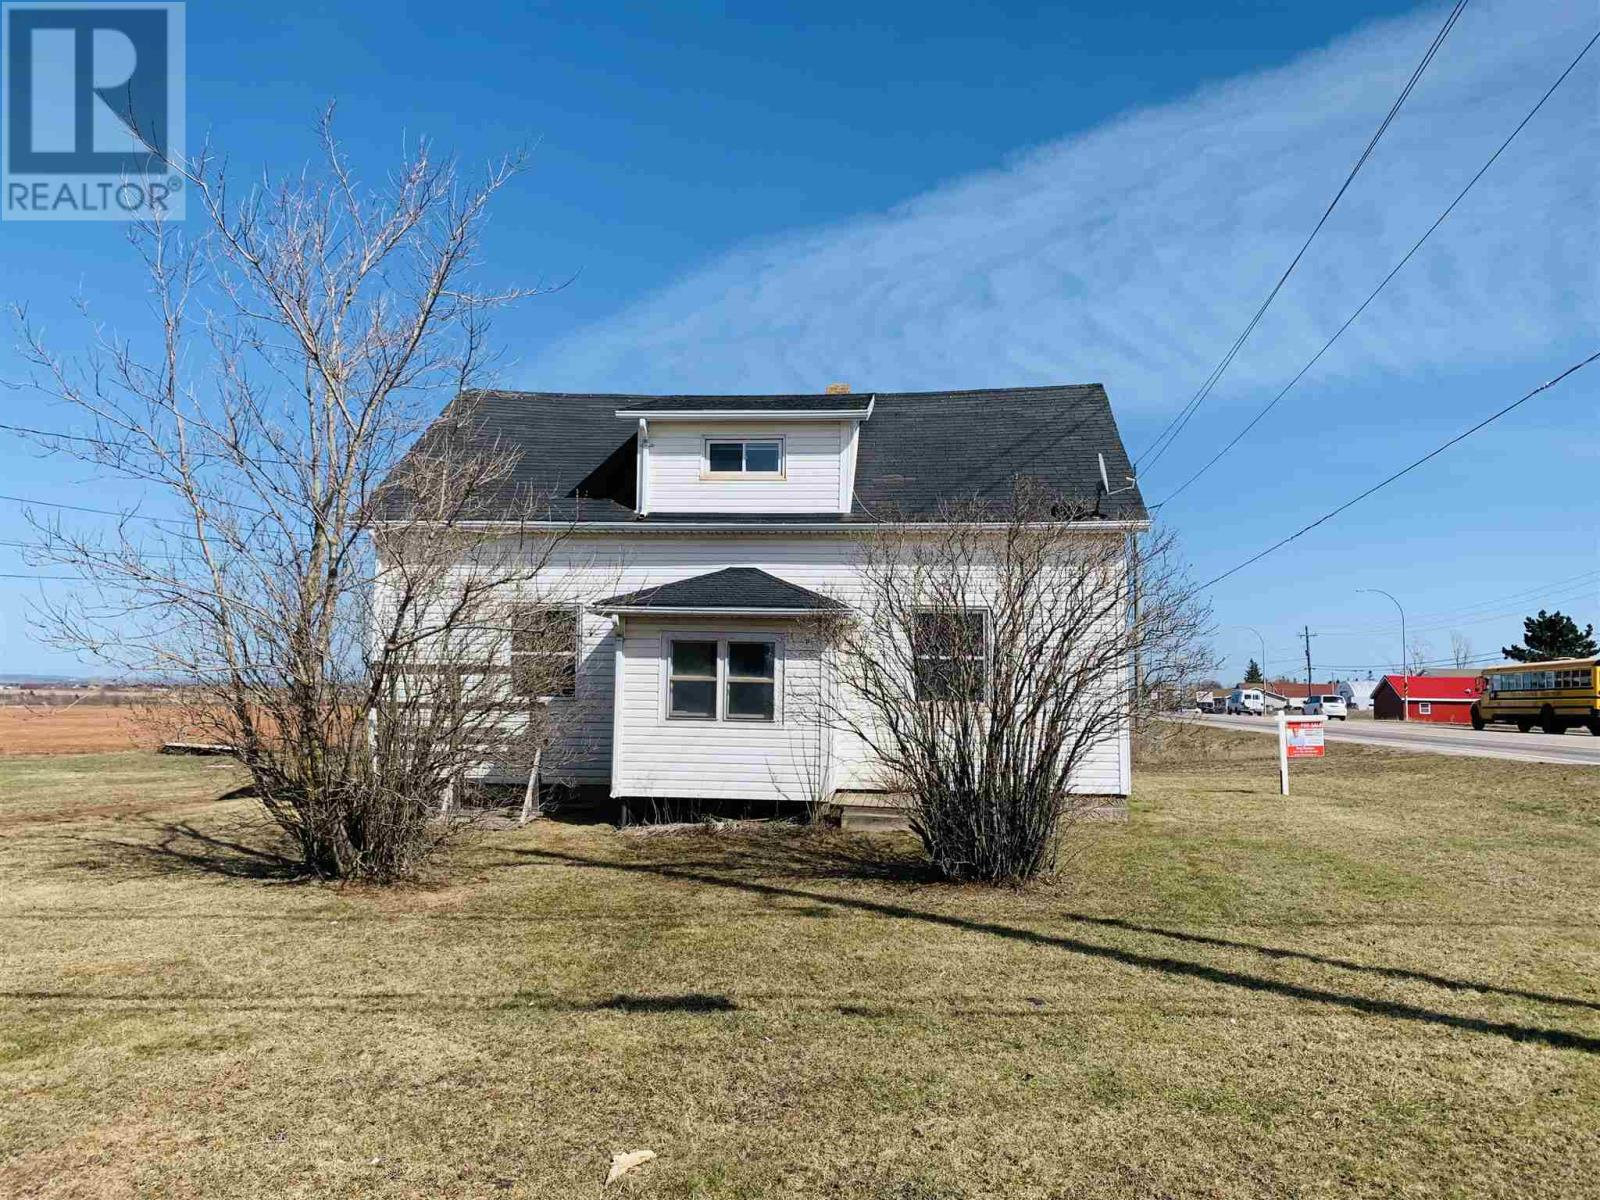 81 North Drive81 North Drive, North St. Eleanors, Prince Edward Island C1N4E9, ,Vacant Land,For Sale,81 North Drive,202100494